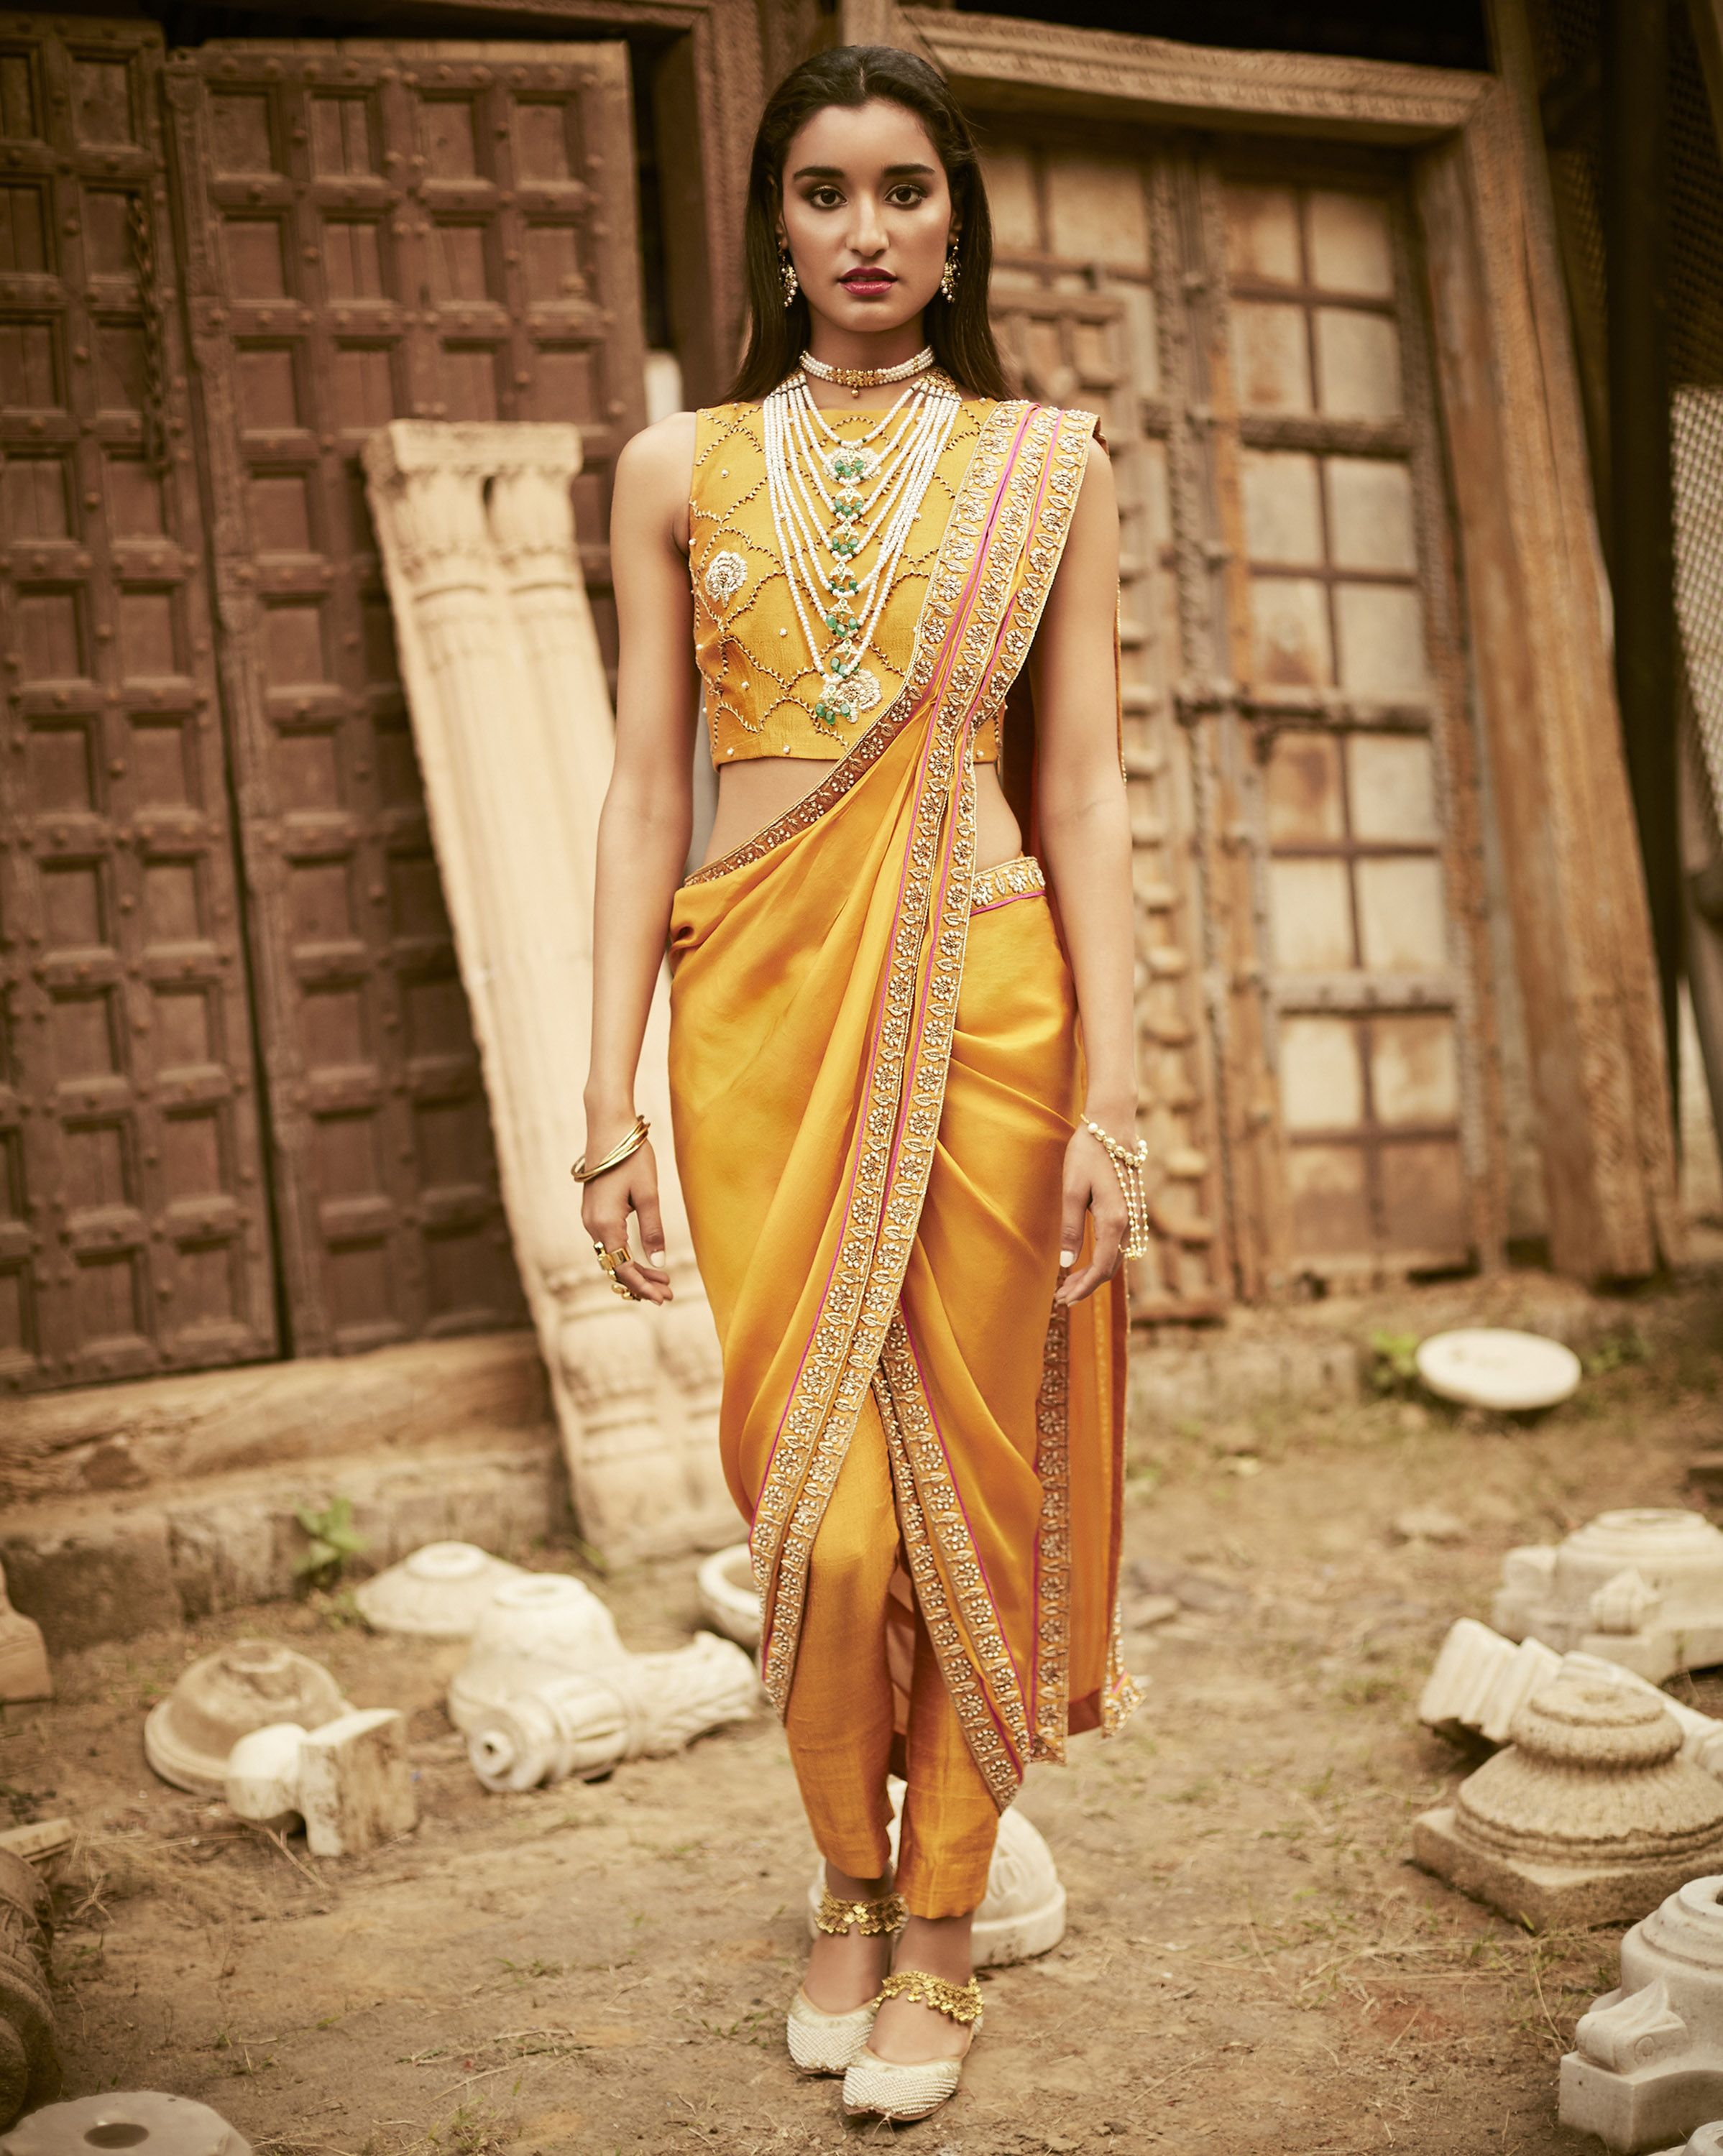 Dhoti indian wedding outfit